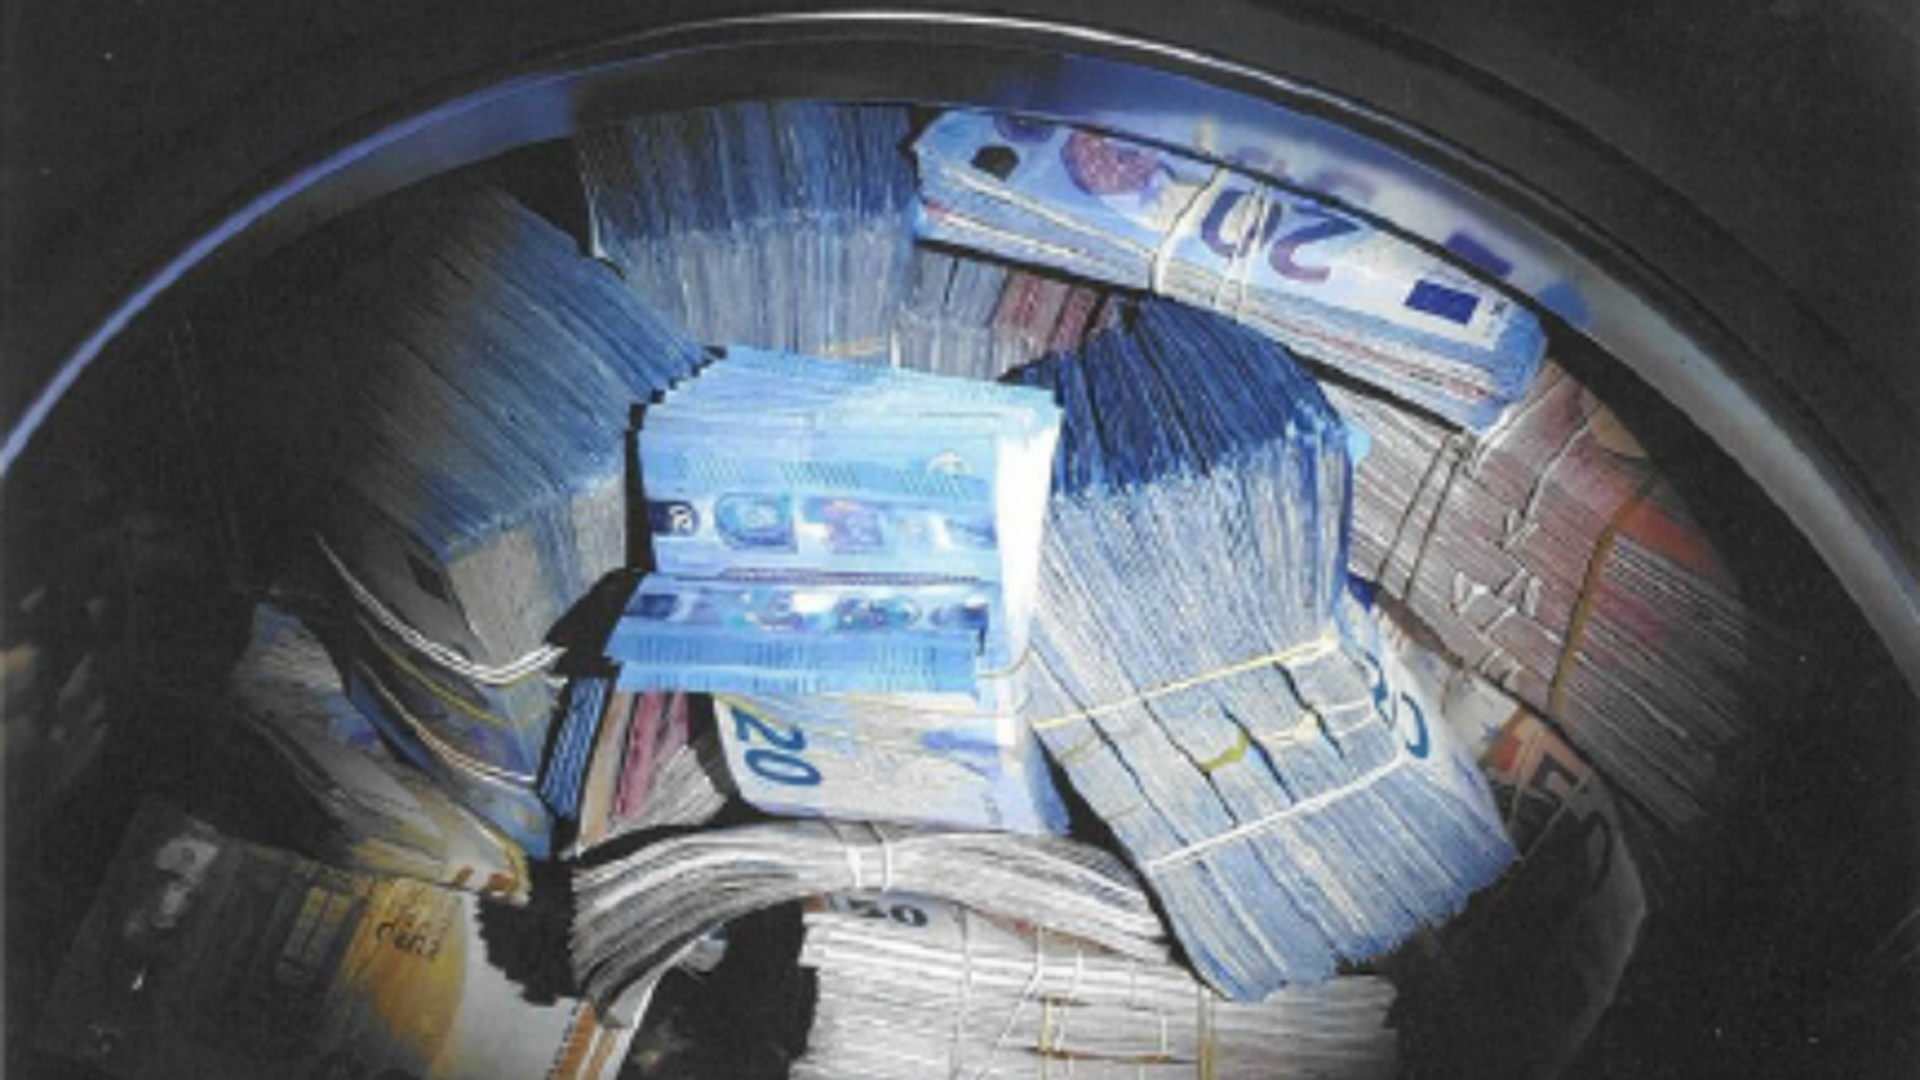 Police in Amsterdam arrested a man on suspicion of money laundering after finding about 350,000 euros, worth about $400,000, in a washing machine. (Credit: Netherlands National Police Corps)